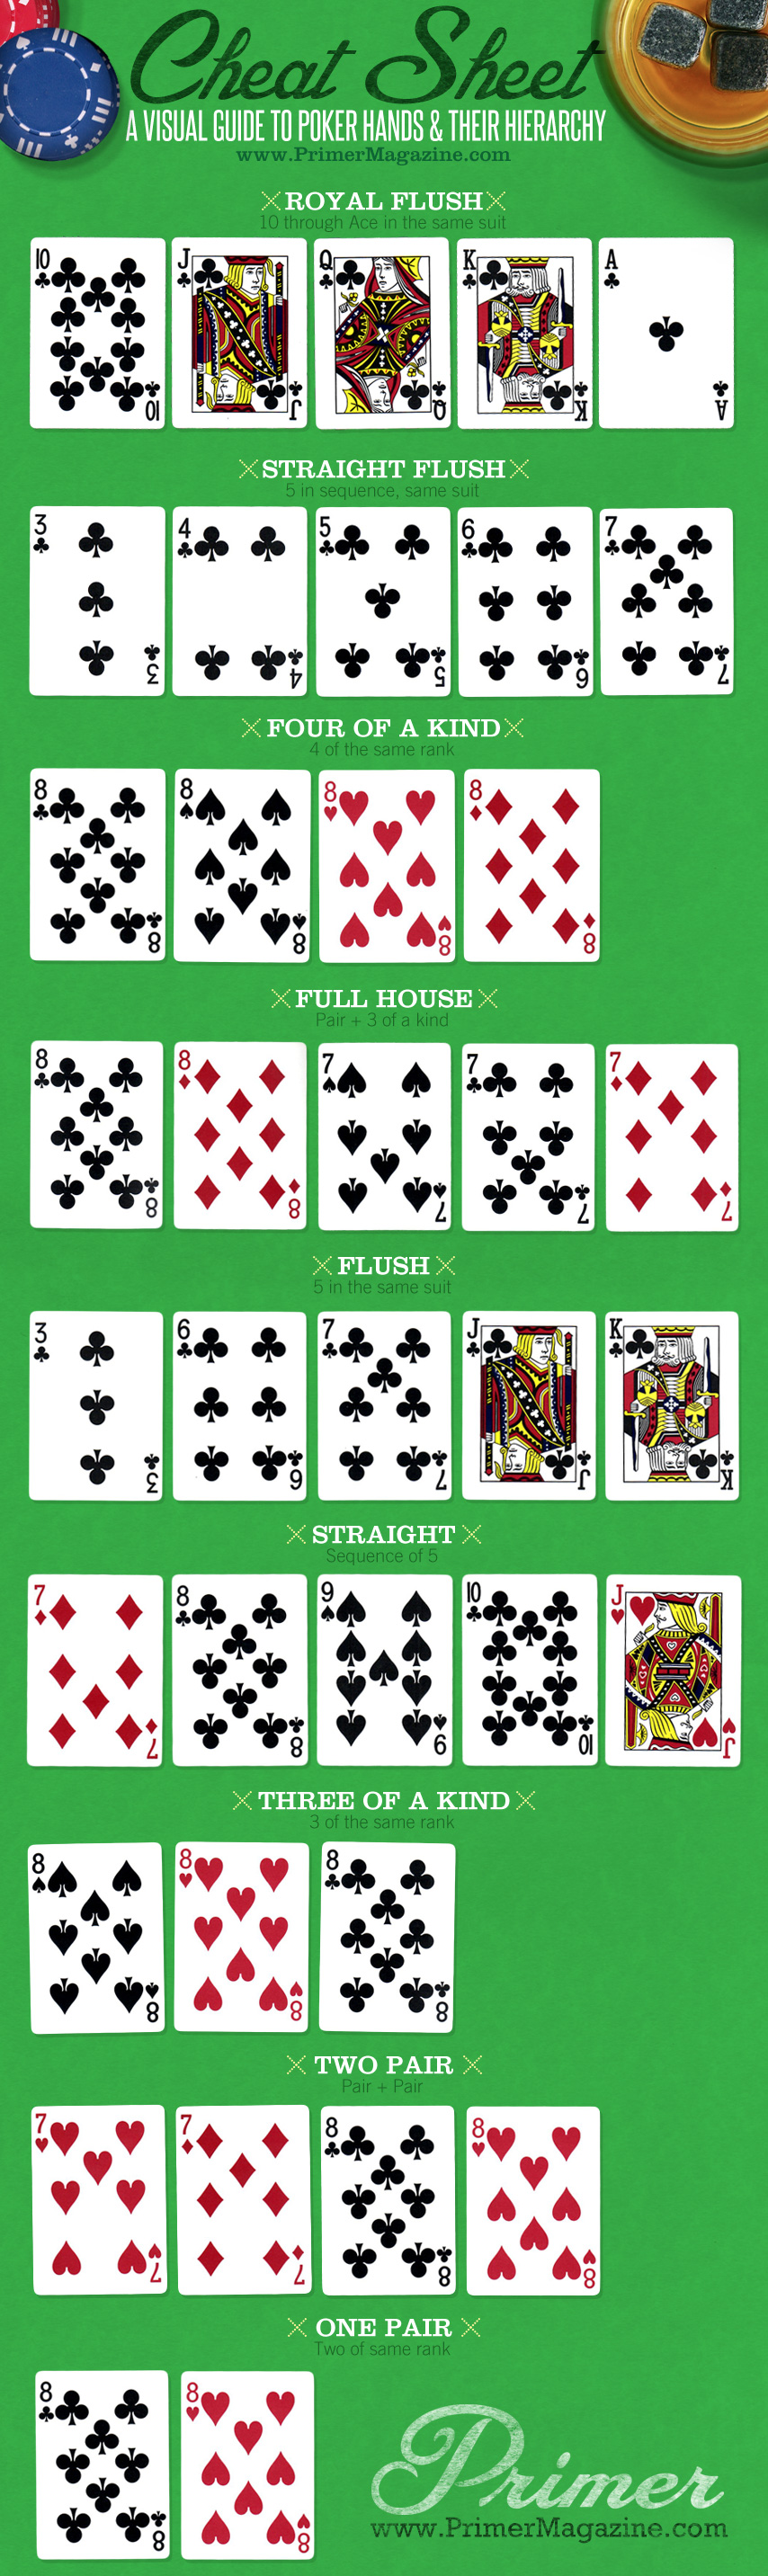 A Visual Guide to Poker Hands \u0026 Descriptions